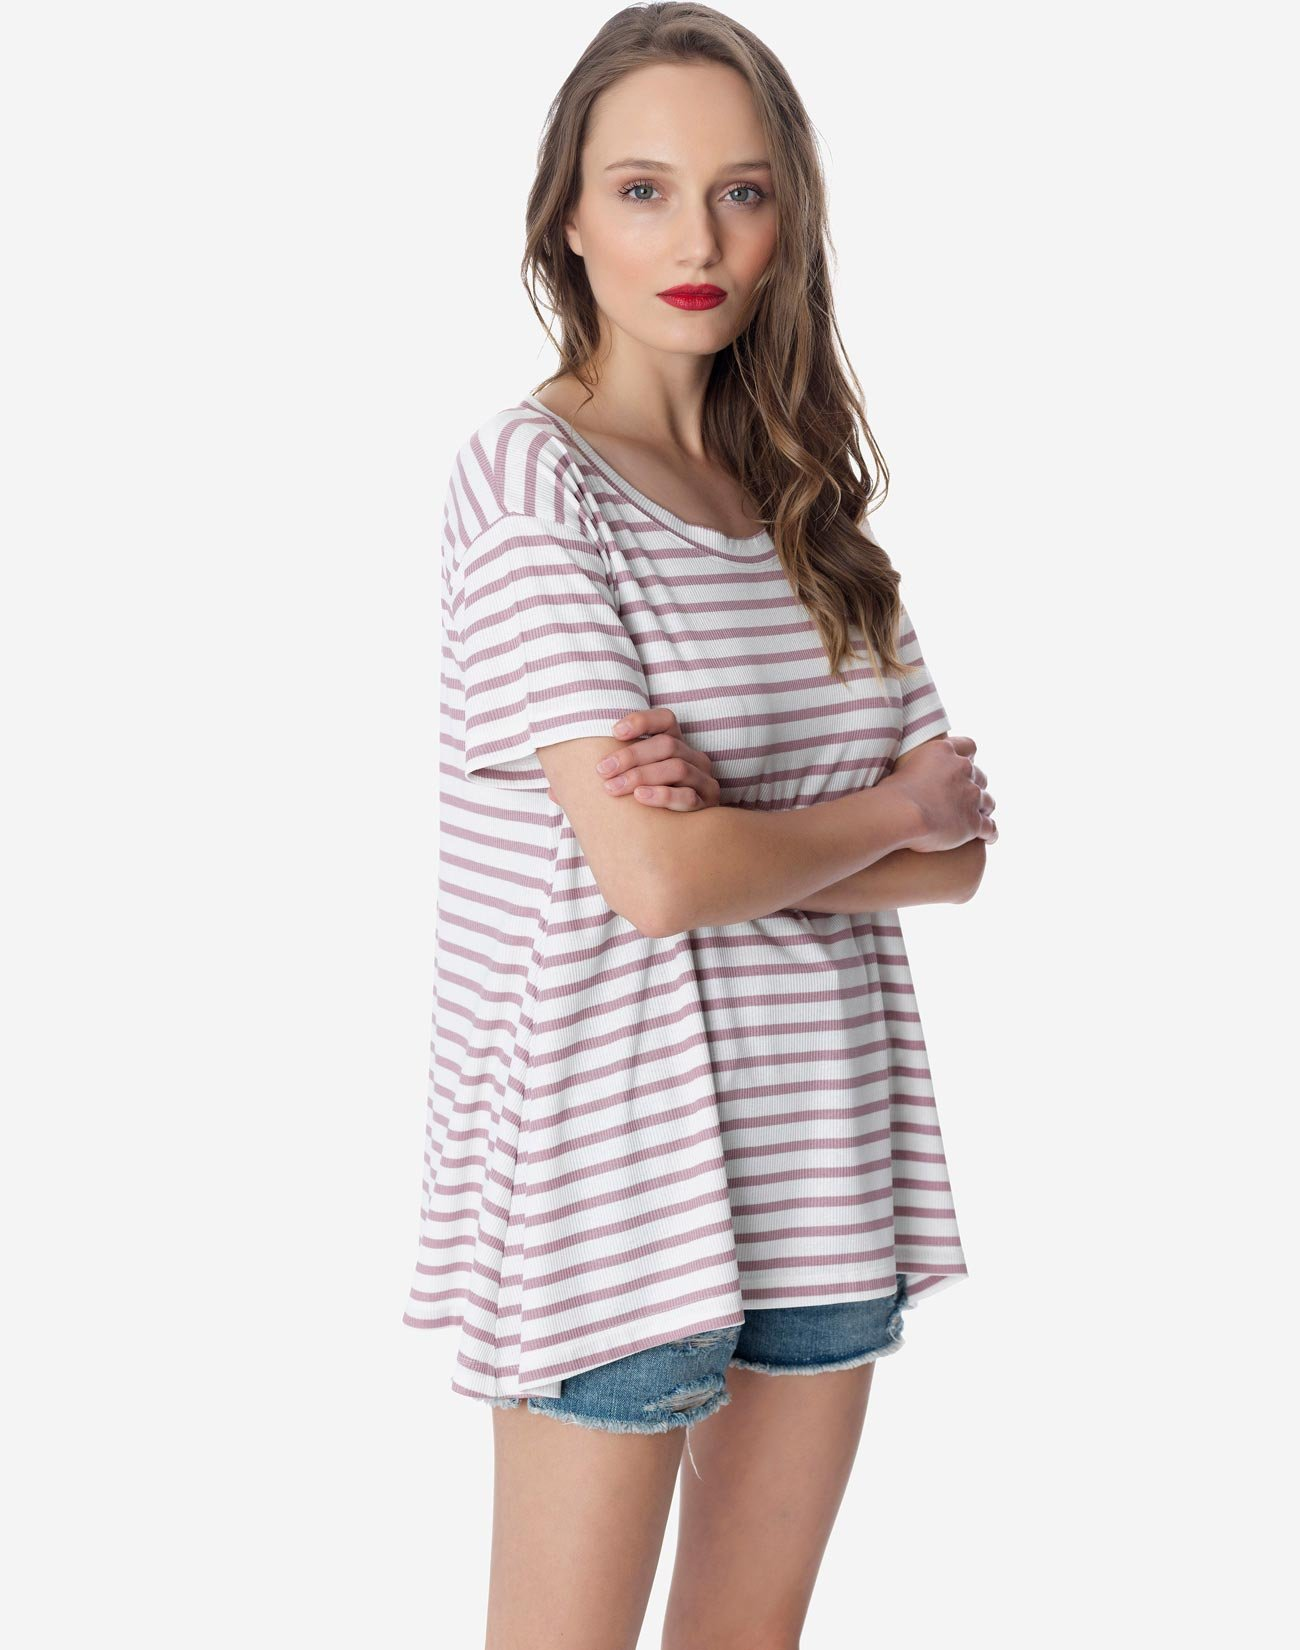 Oversized striped top